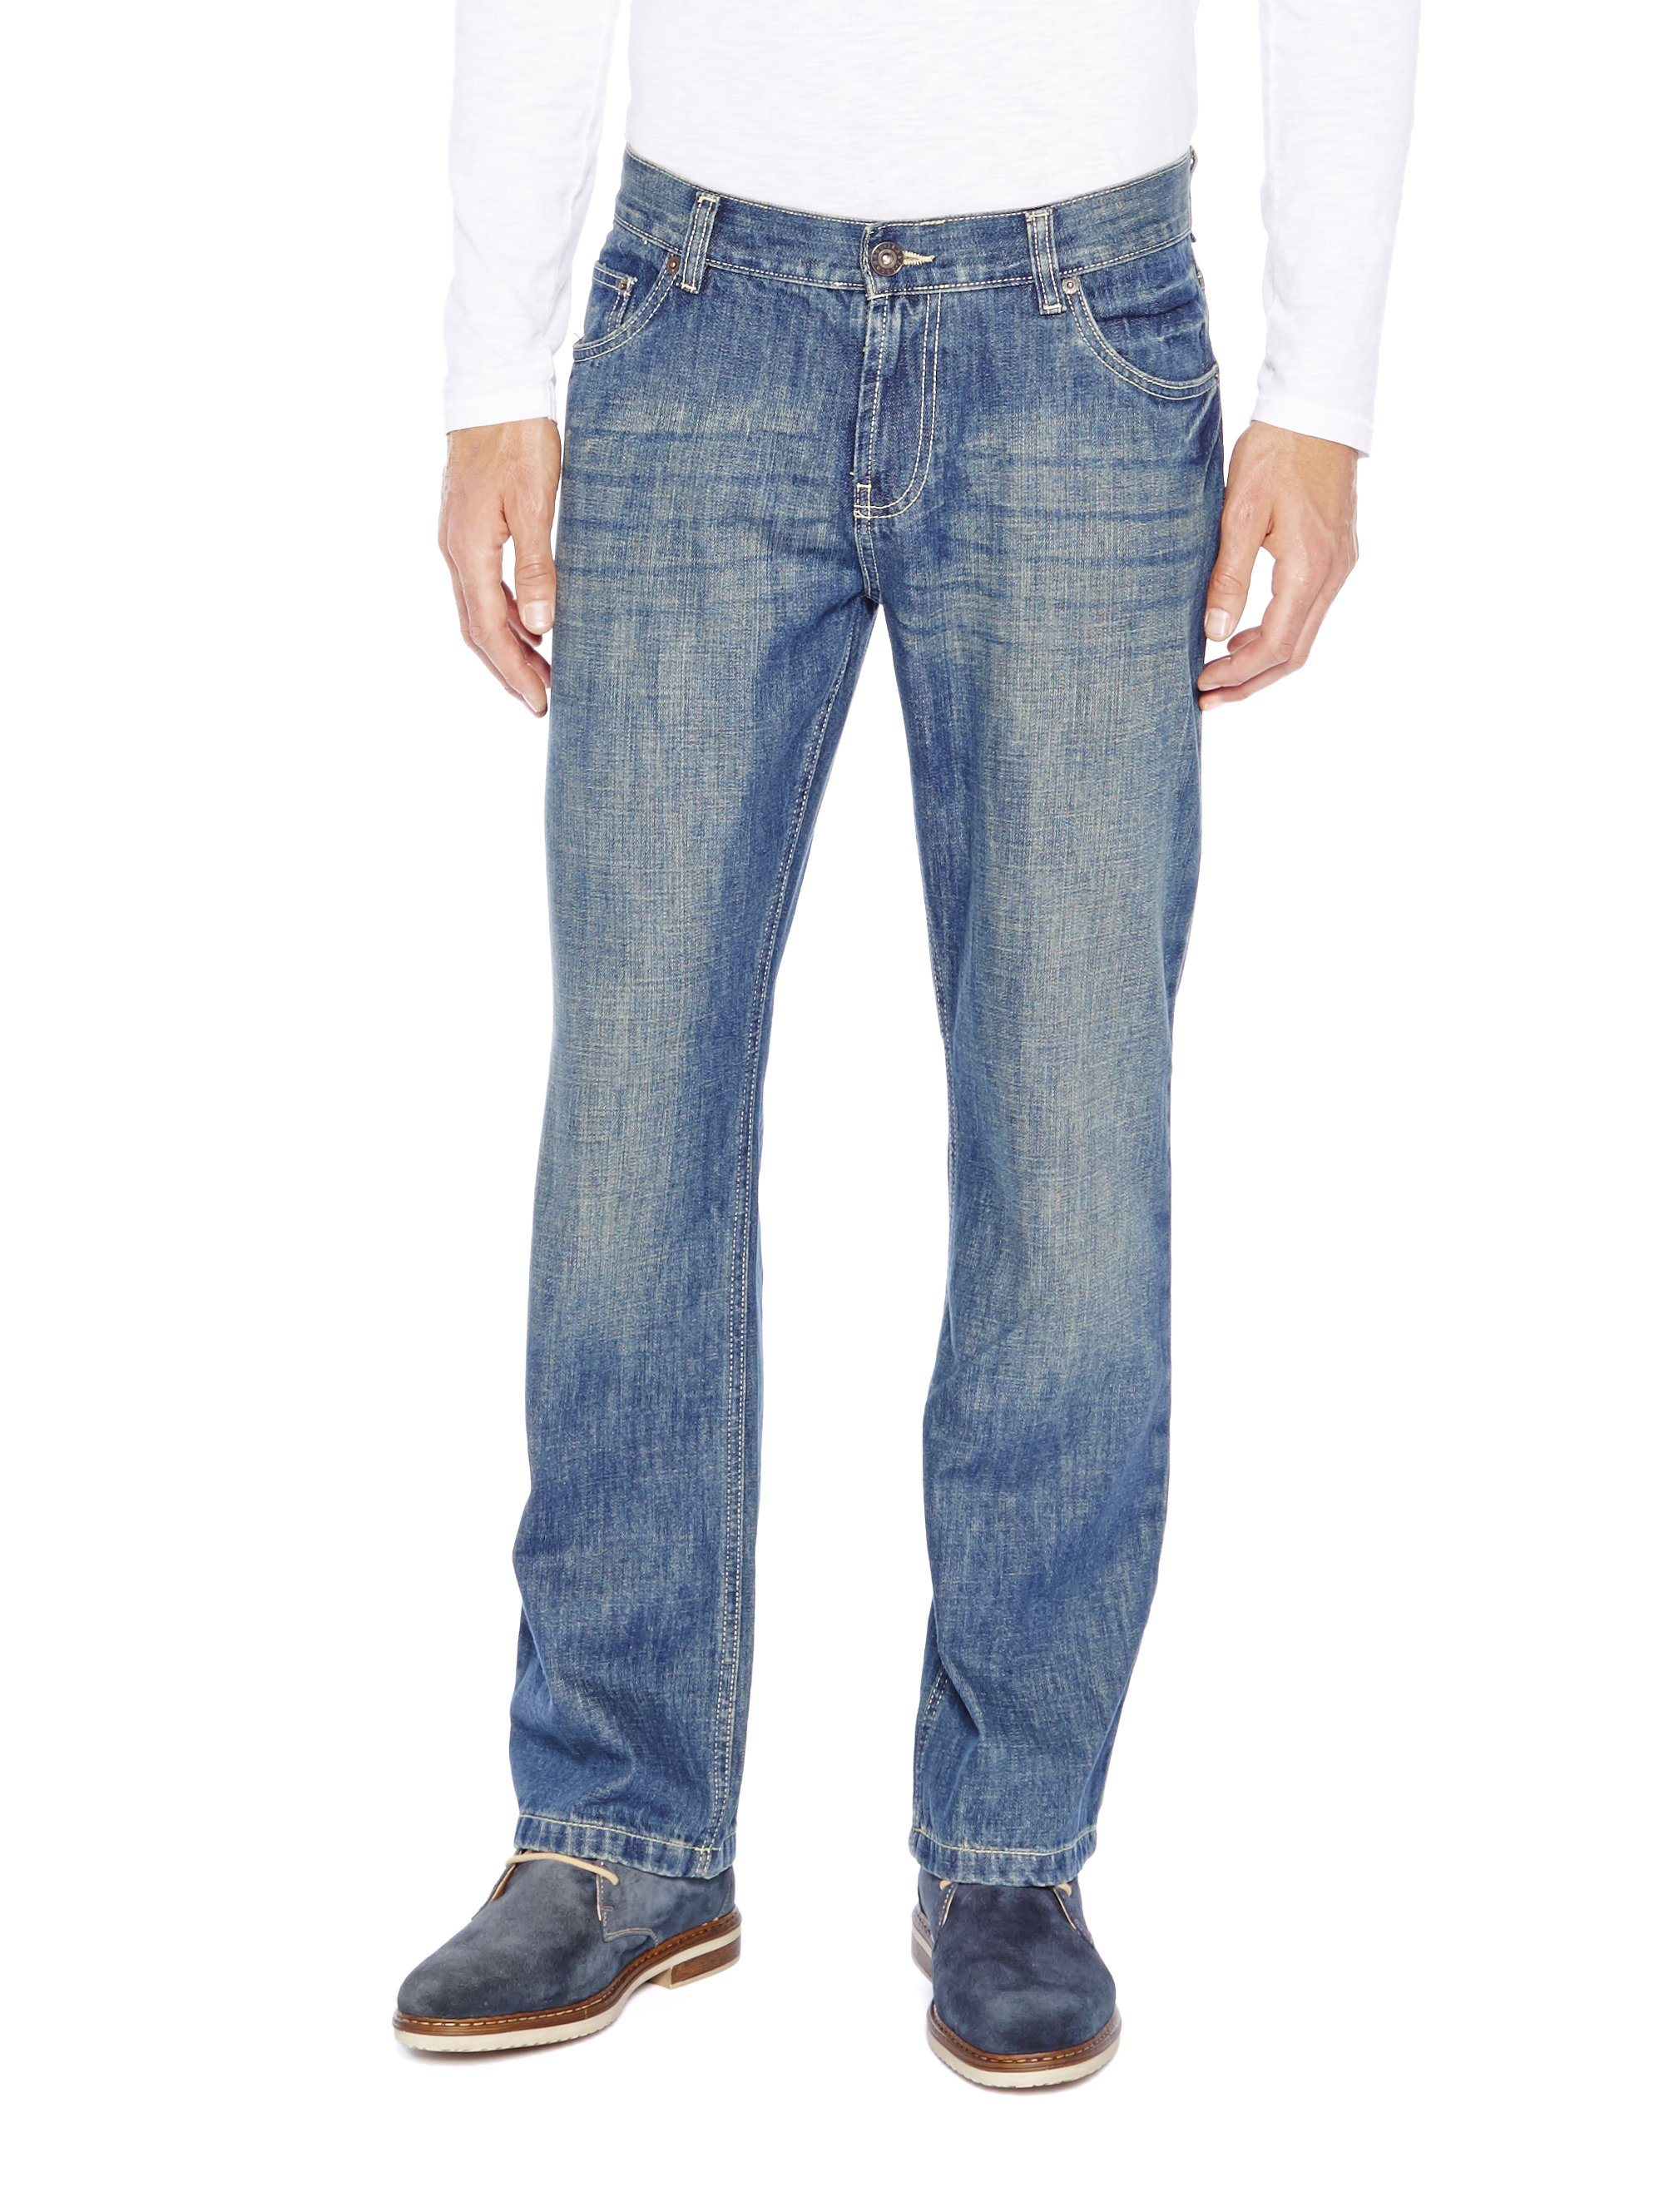 COLORADO DENIM Jeans »C916 LAKE Herren Jeans«